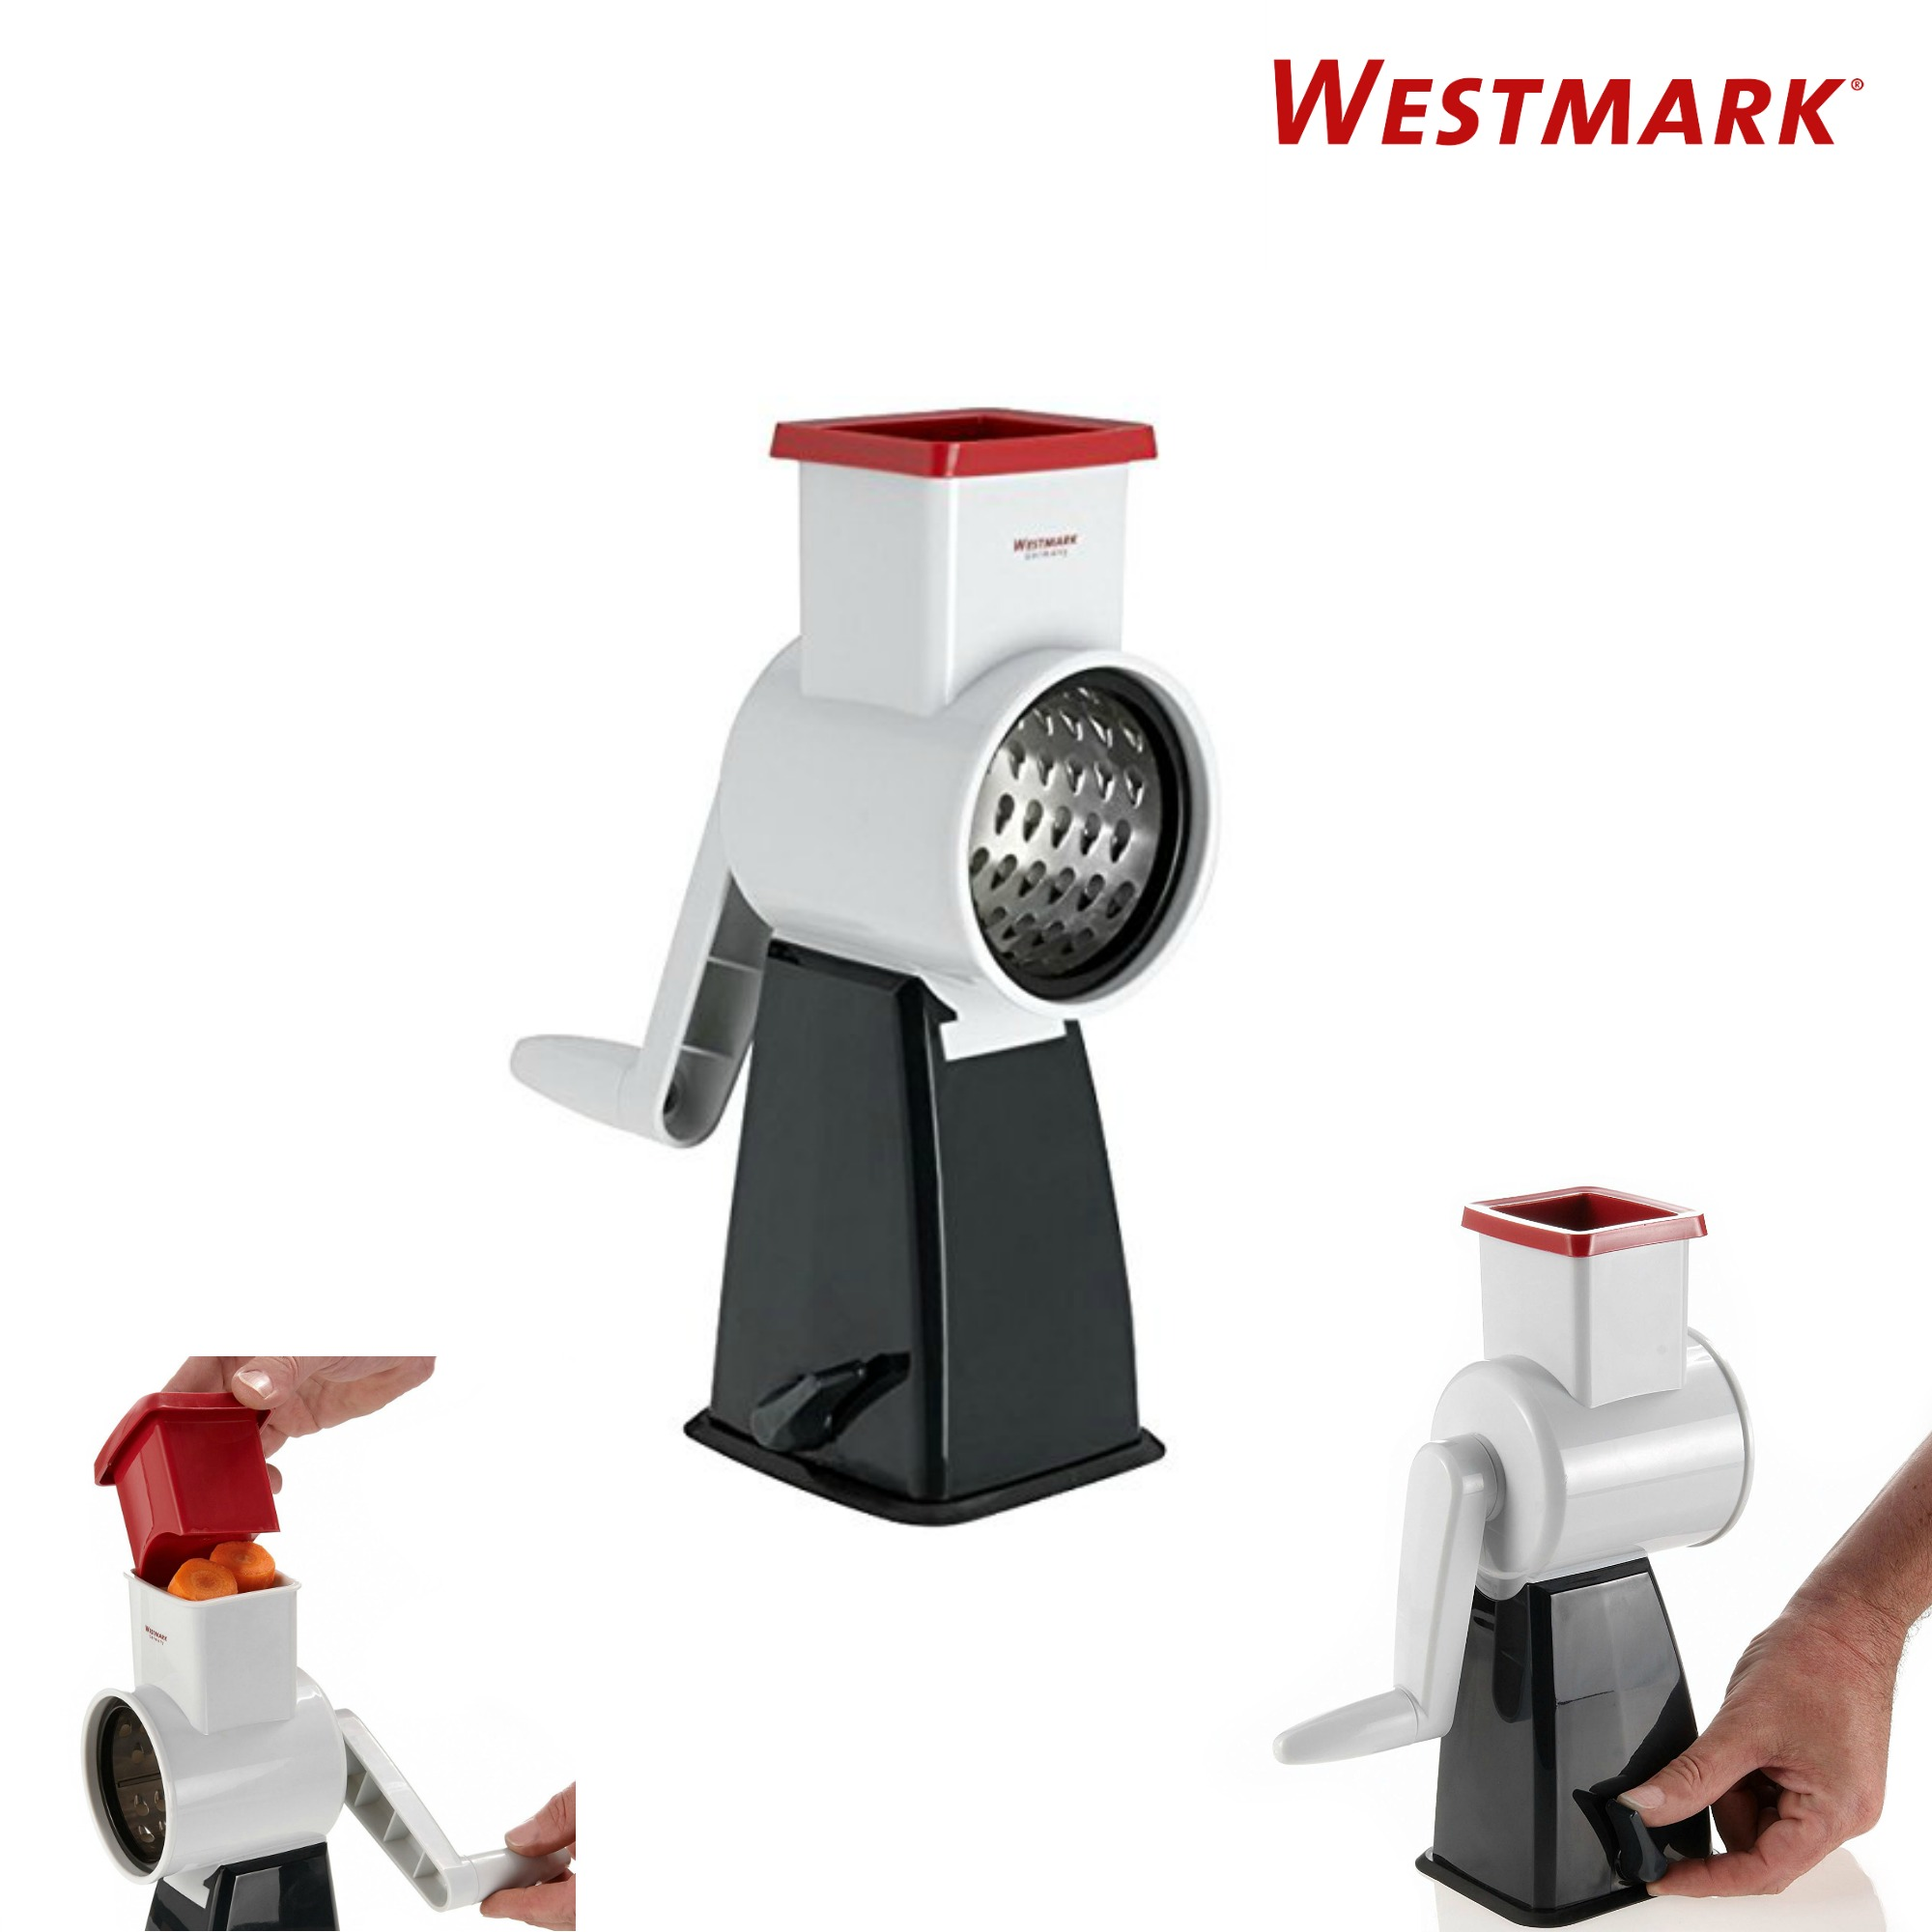 Westmark Multipurpose Rotary Cheese Grater with 4 Interchangeable Stainless Steel Drums and Non-Slip Suction Pad